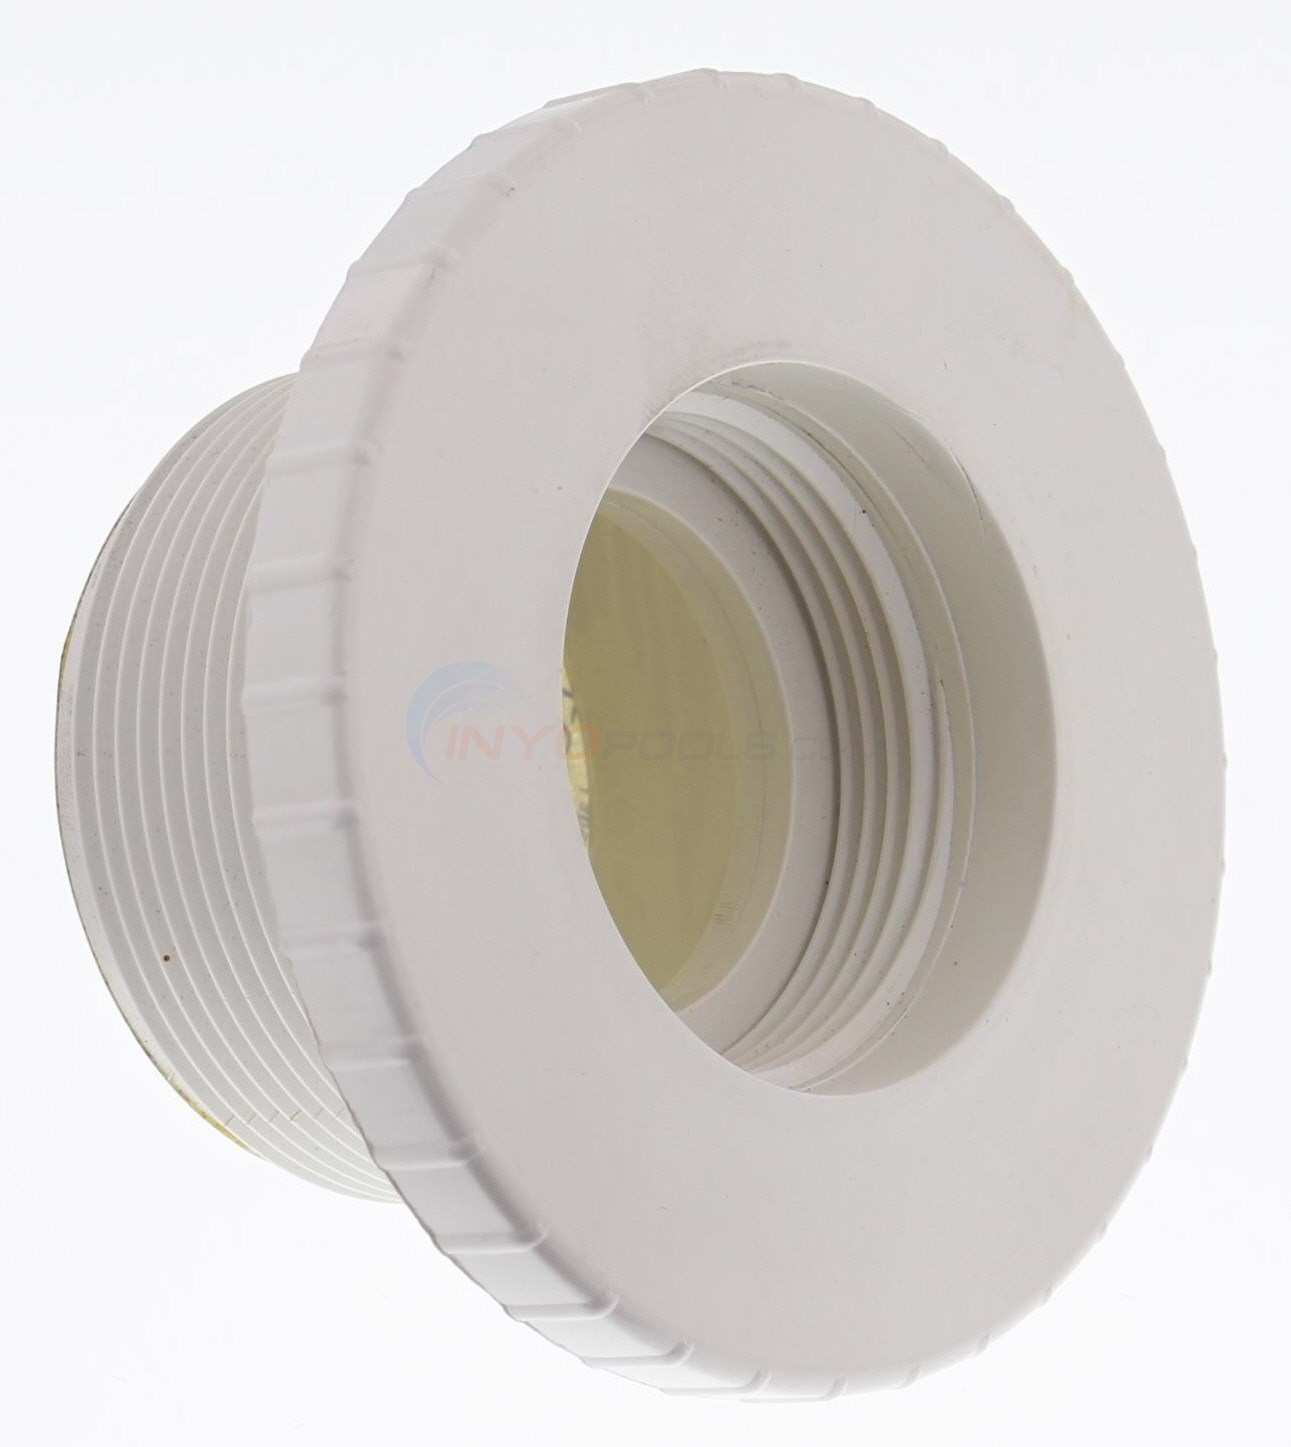 "GUNITE STD. LENS HOUSING, WHITE 1 1/2"" SOCKET"